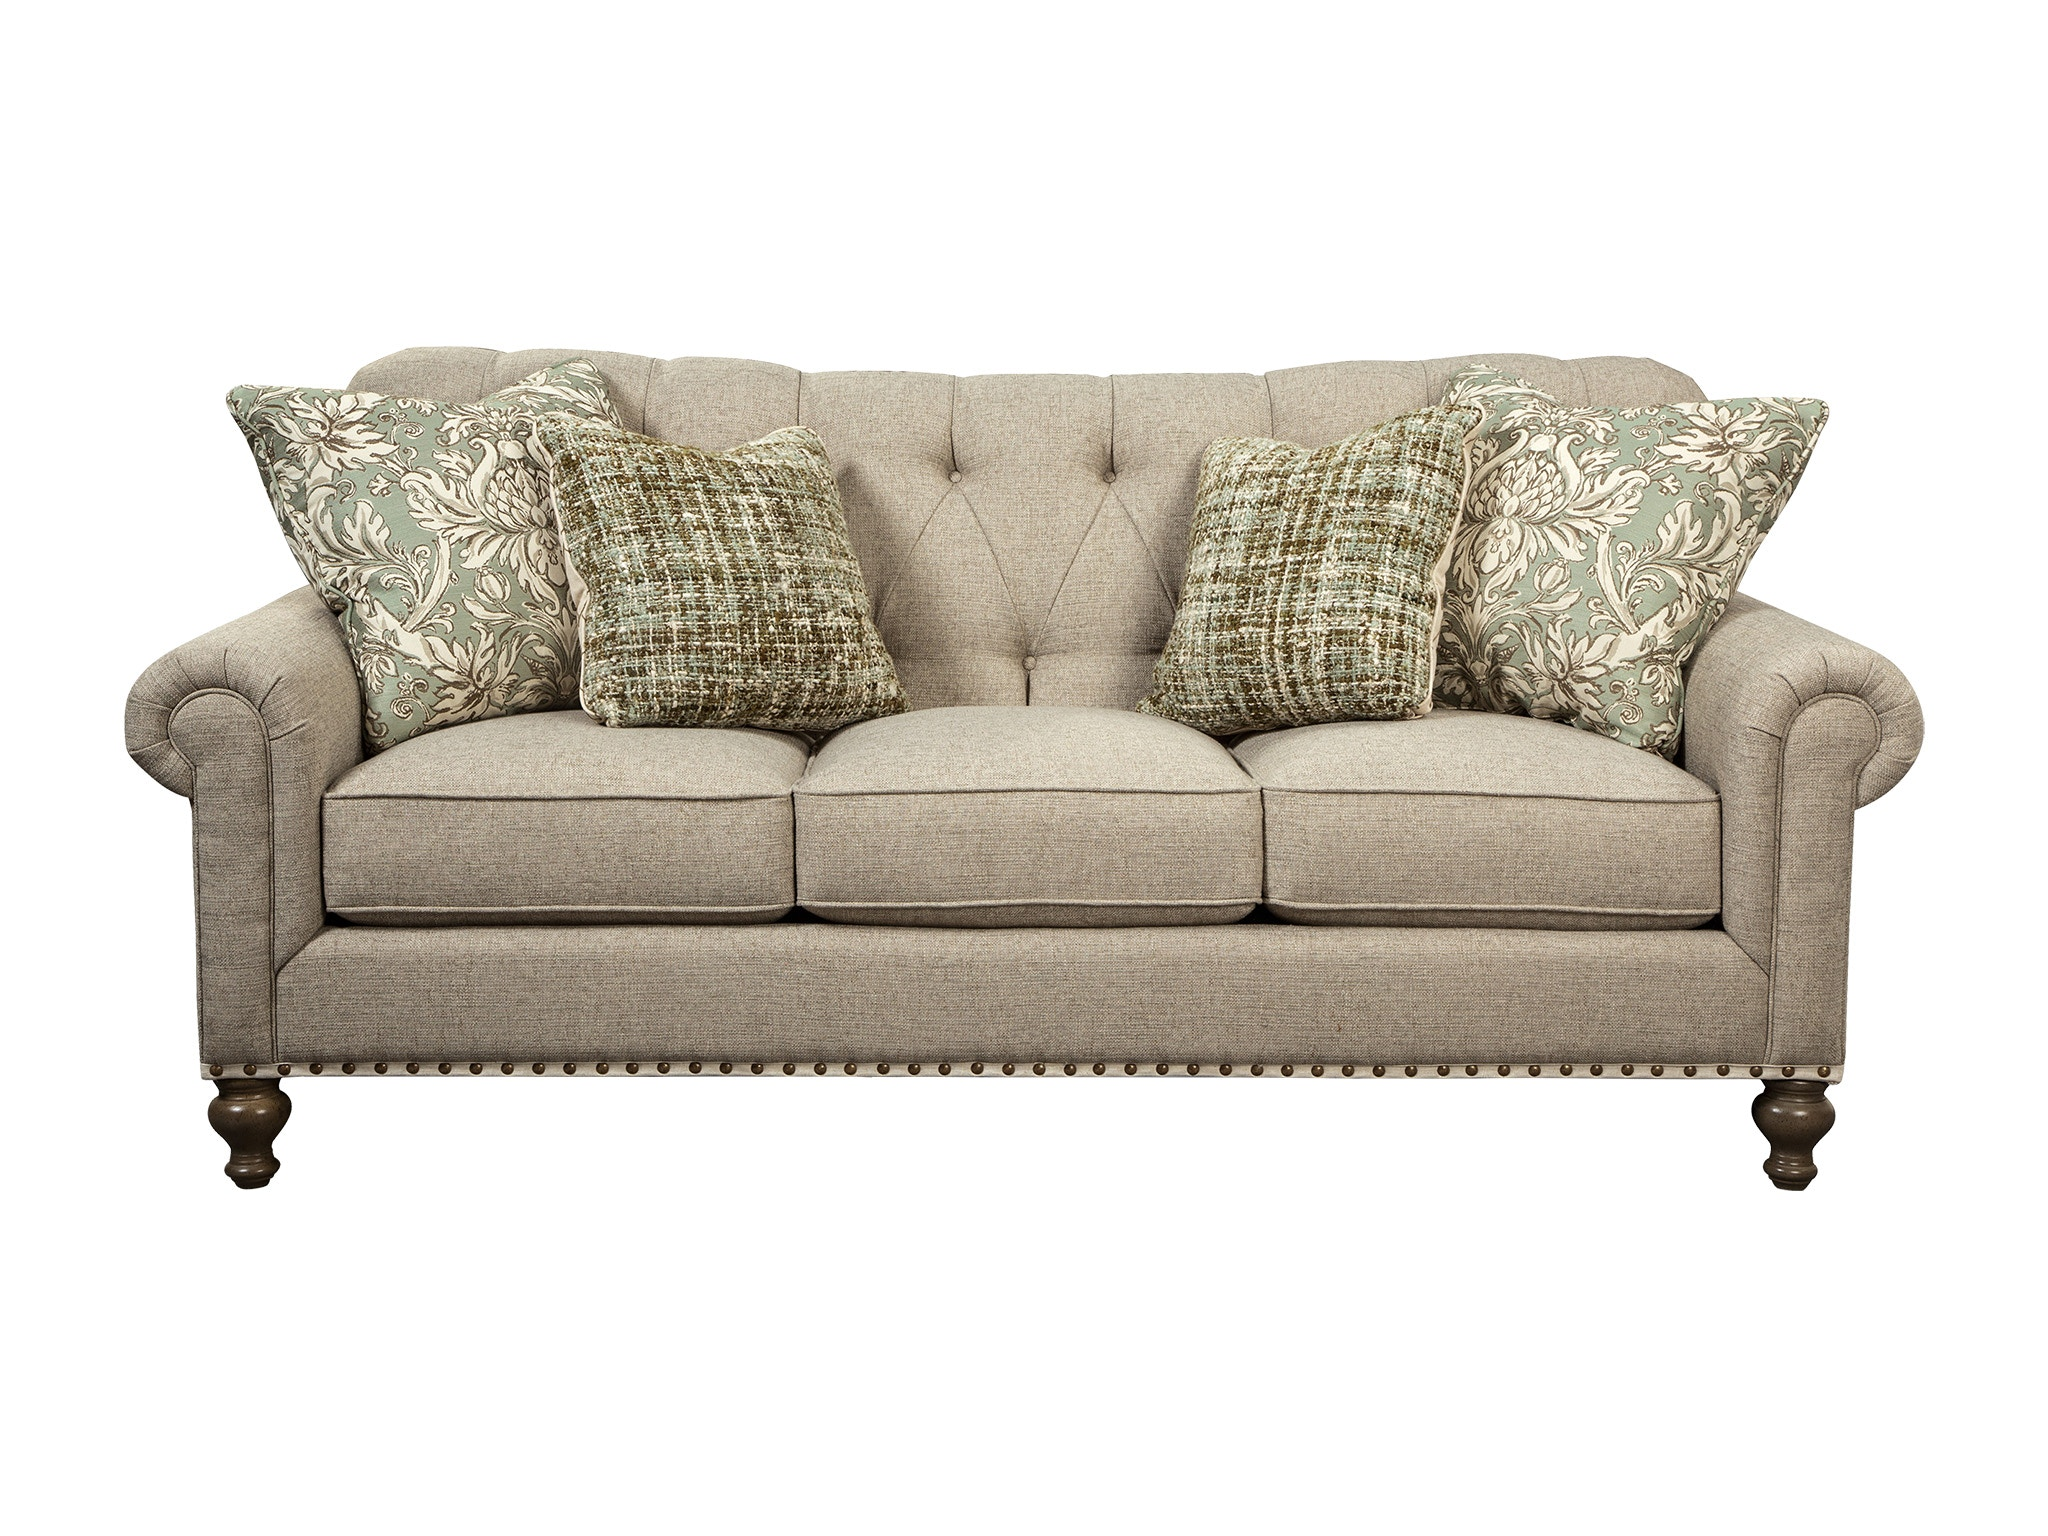 Paula Deen By Craftmaster Sofa P754150BD